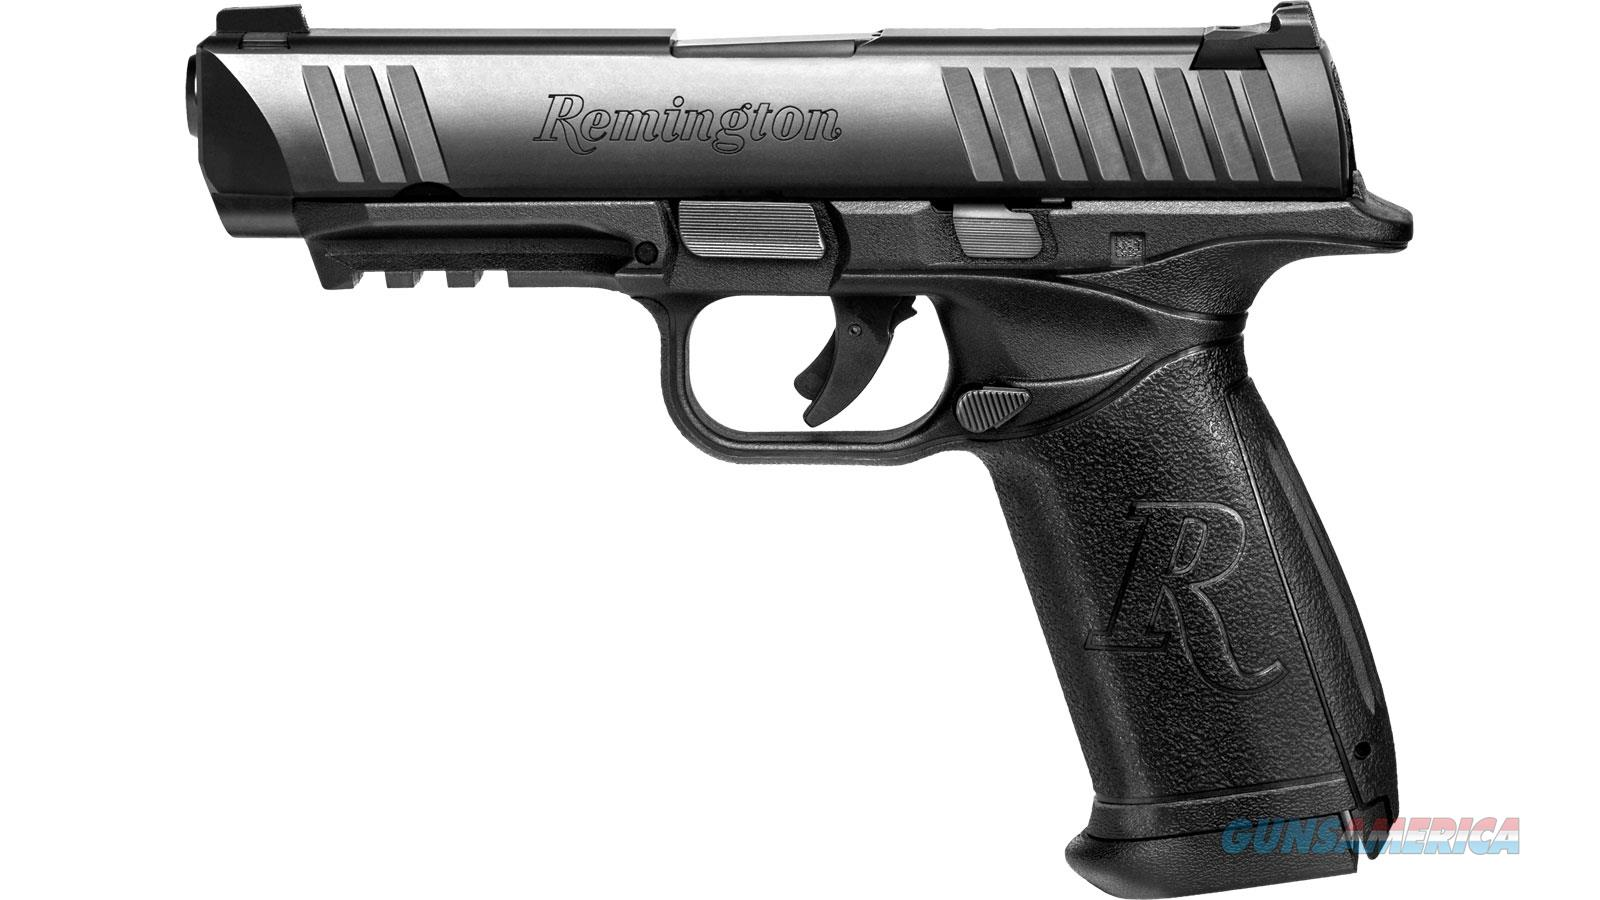 "REMINGTON RP9 9MM 4.5"" 18RD 96466 Guns > Pistols > Remington Pistols - Modern > RP9"